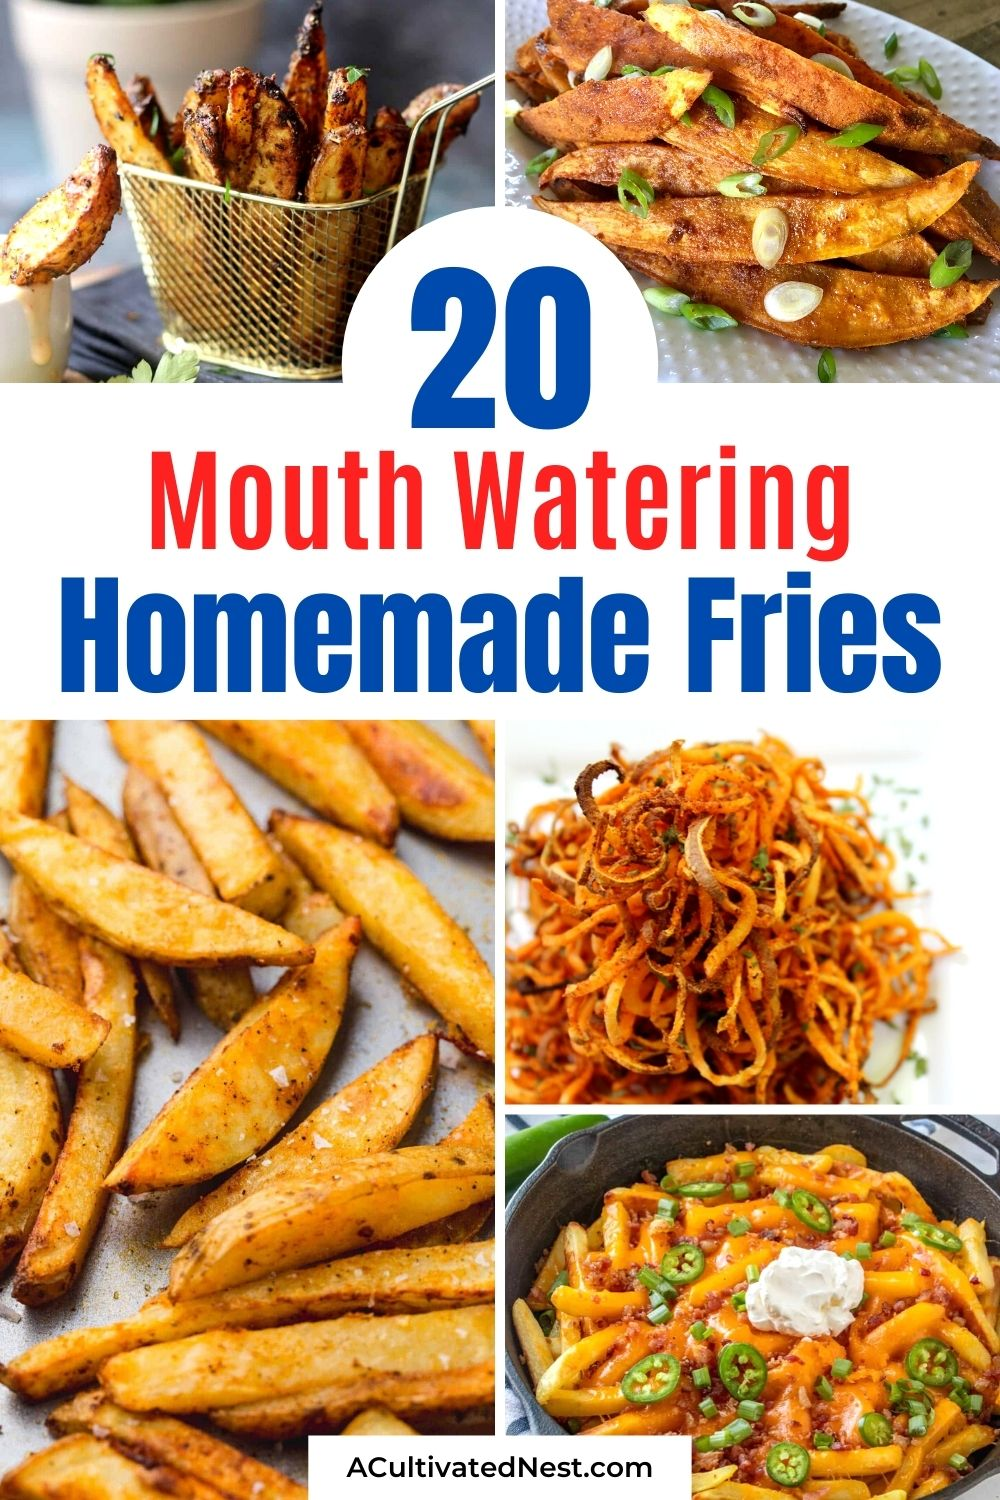 20 Delicious Homemade Fry Recipes- There are so many delicious ways to make French fries at home! For some delicious inspiration, check out these 20 delicious homemade fry recipes! They're the perfect side to any meal! | #recipes #homemadeFries #frenchFries #sidesRecipes #ACultivatedNest